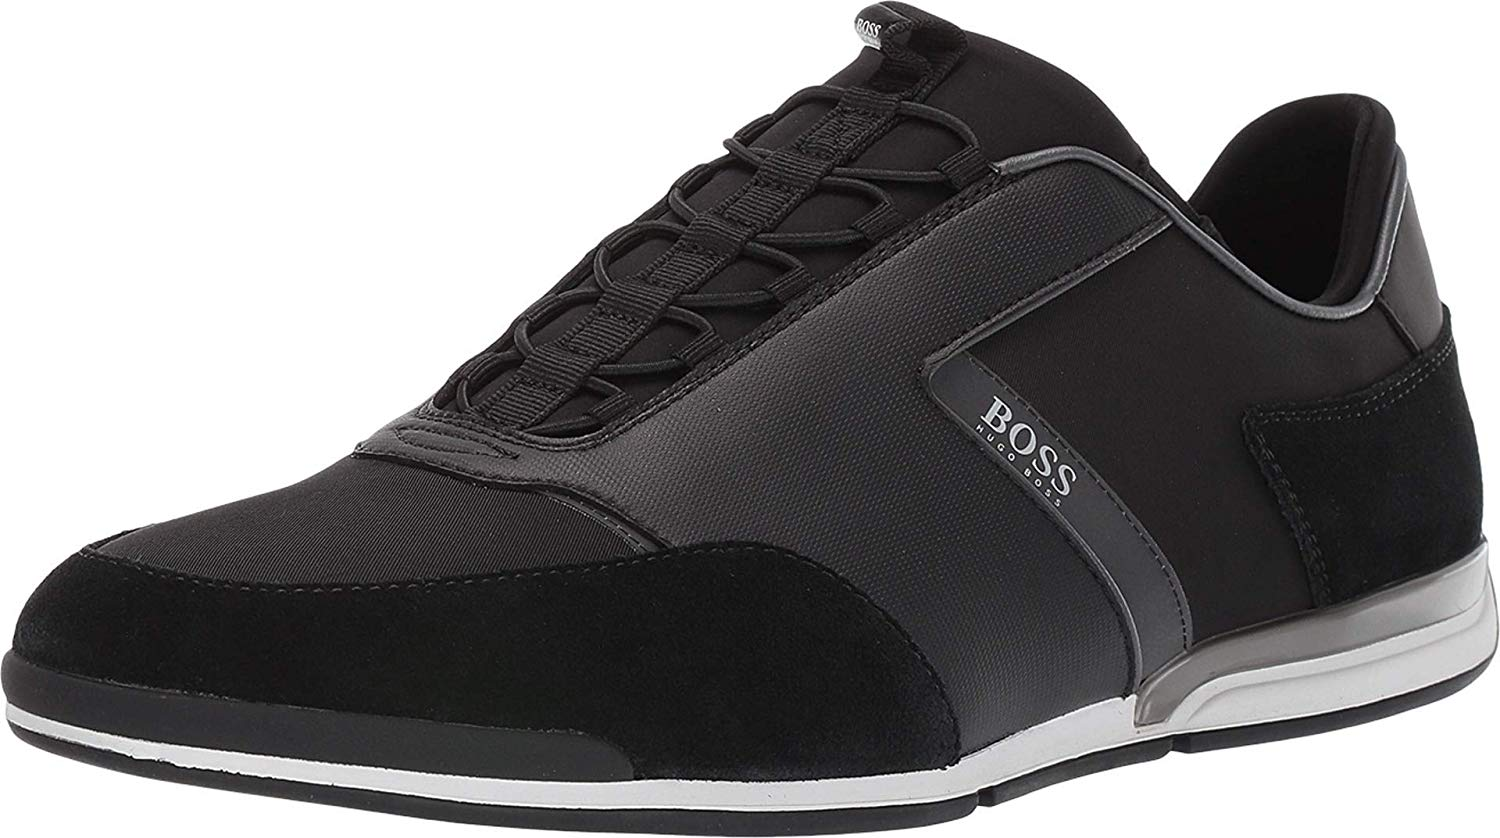 Hugo Boss Saturn_Slon_nymx 10219013 Mens Lace-up sneakers 50414719-001